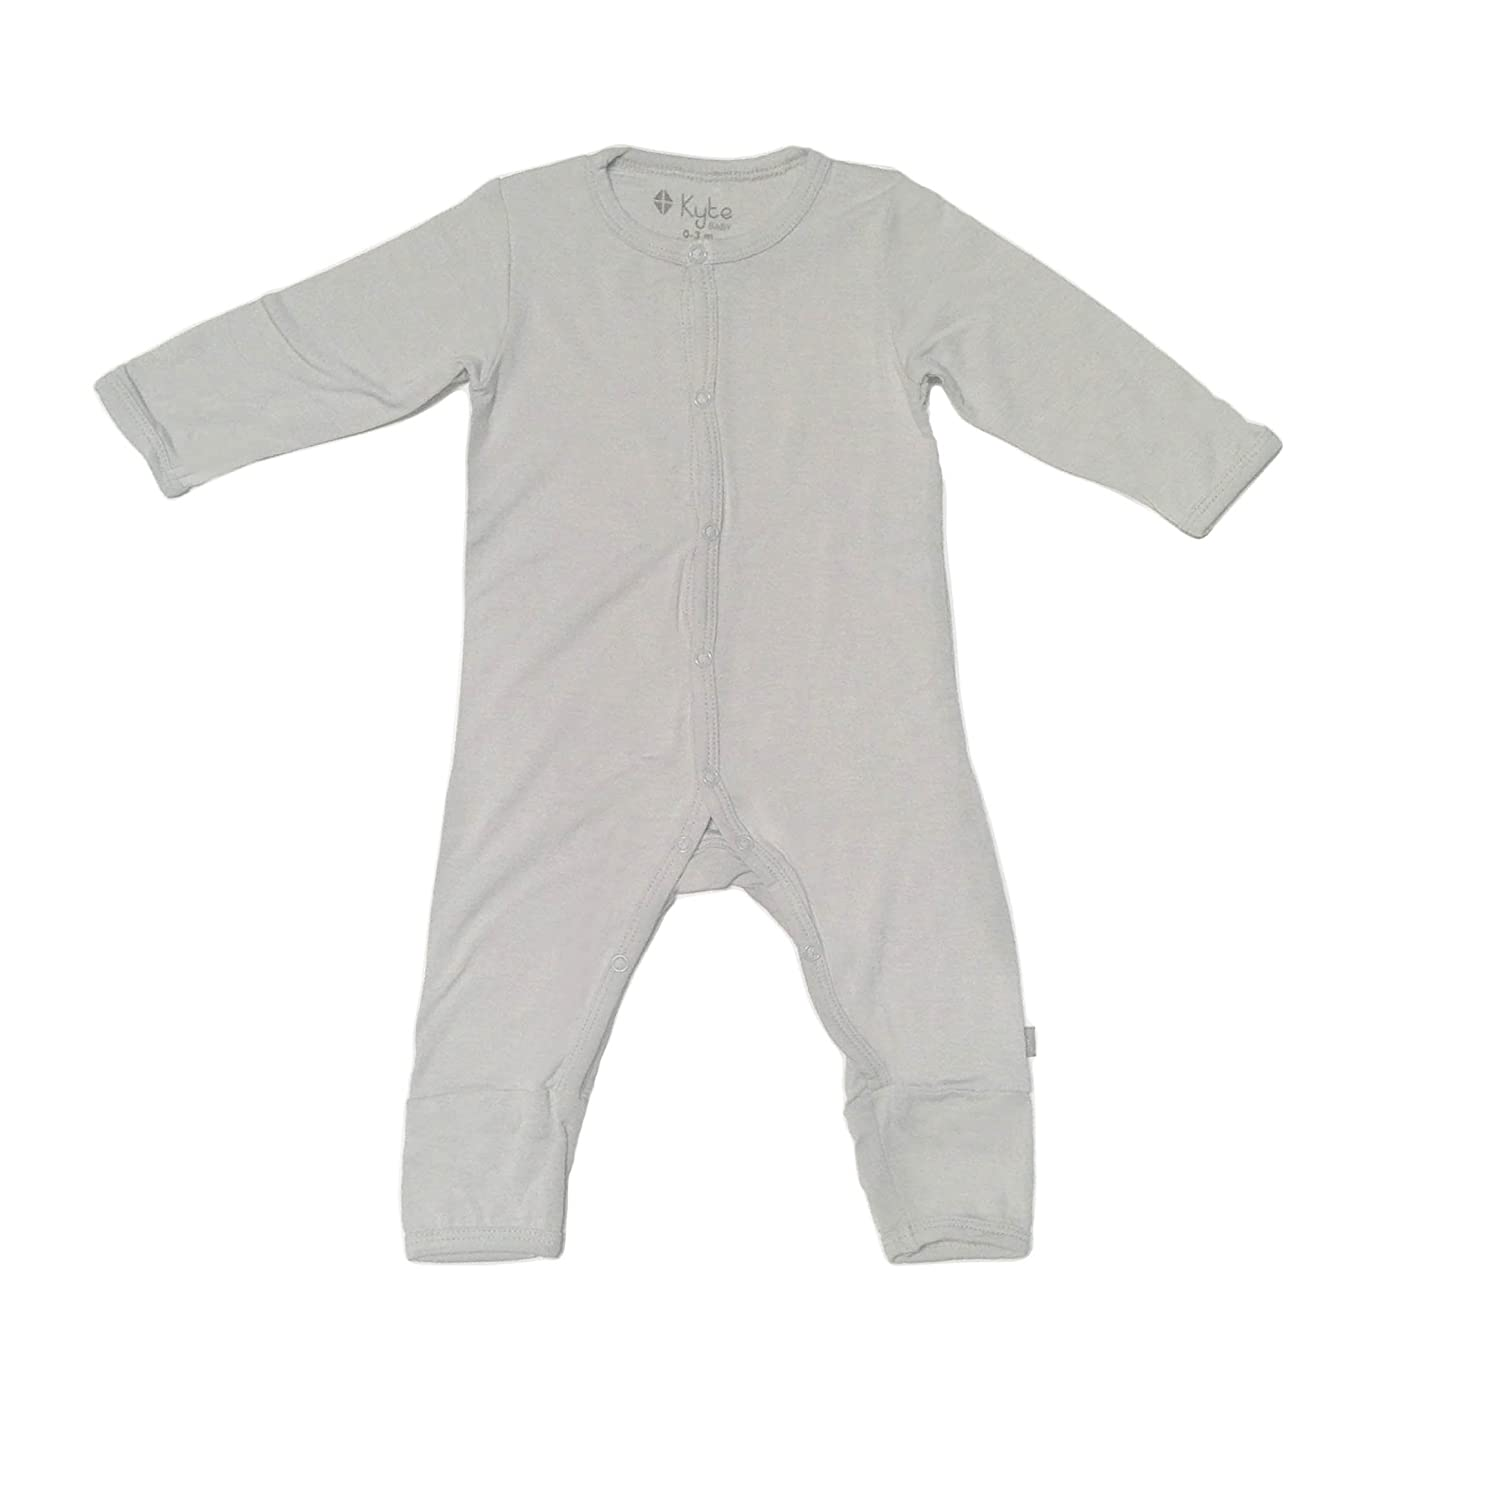 Baby Footless Coveralls Made of Soft Organic Bamboo Rayon Material KYTE BABY Rompers 0-24 Months